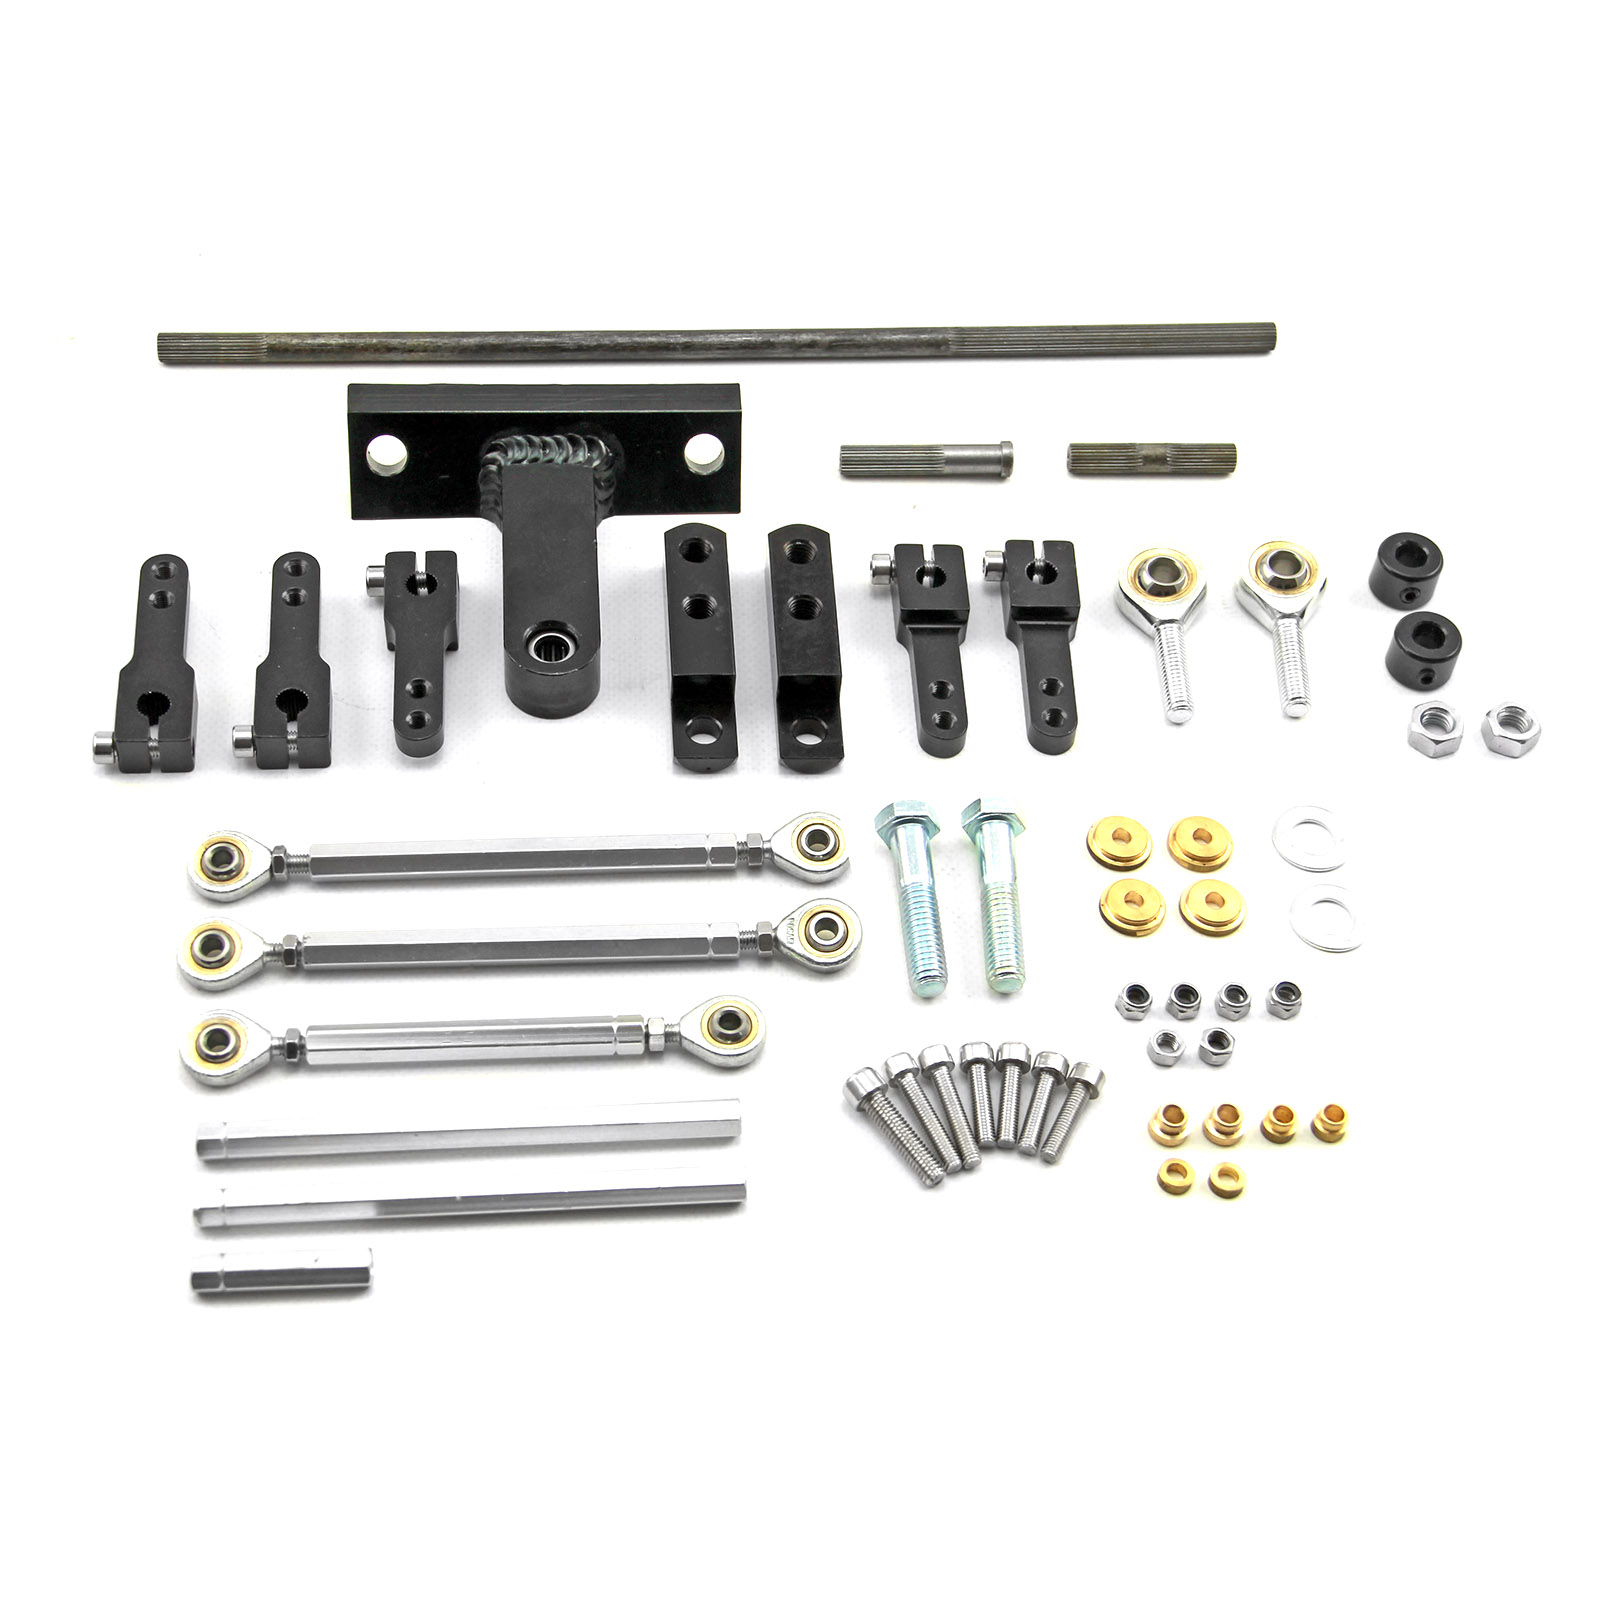 Dual Side Mount Carburetor Linkage Kit for Blower and Tunnel Ram Applications